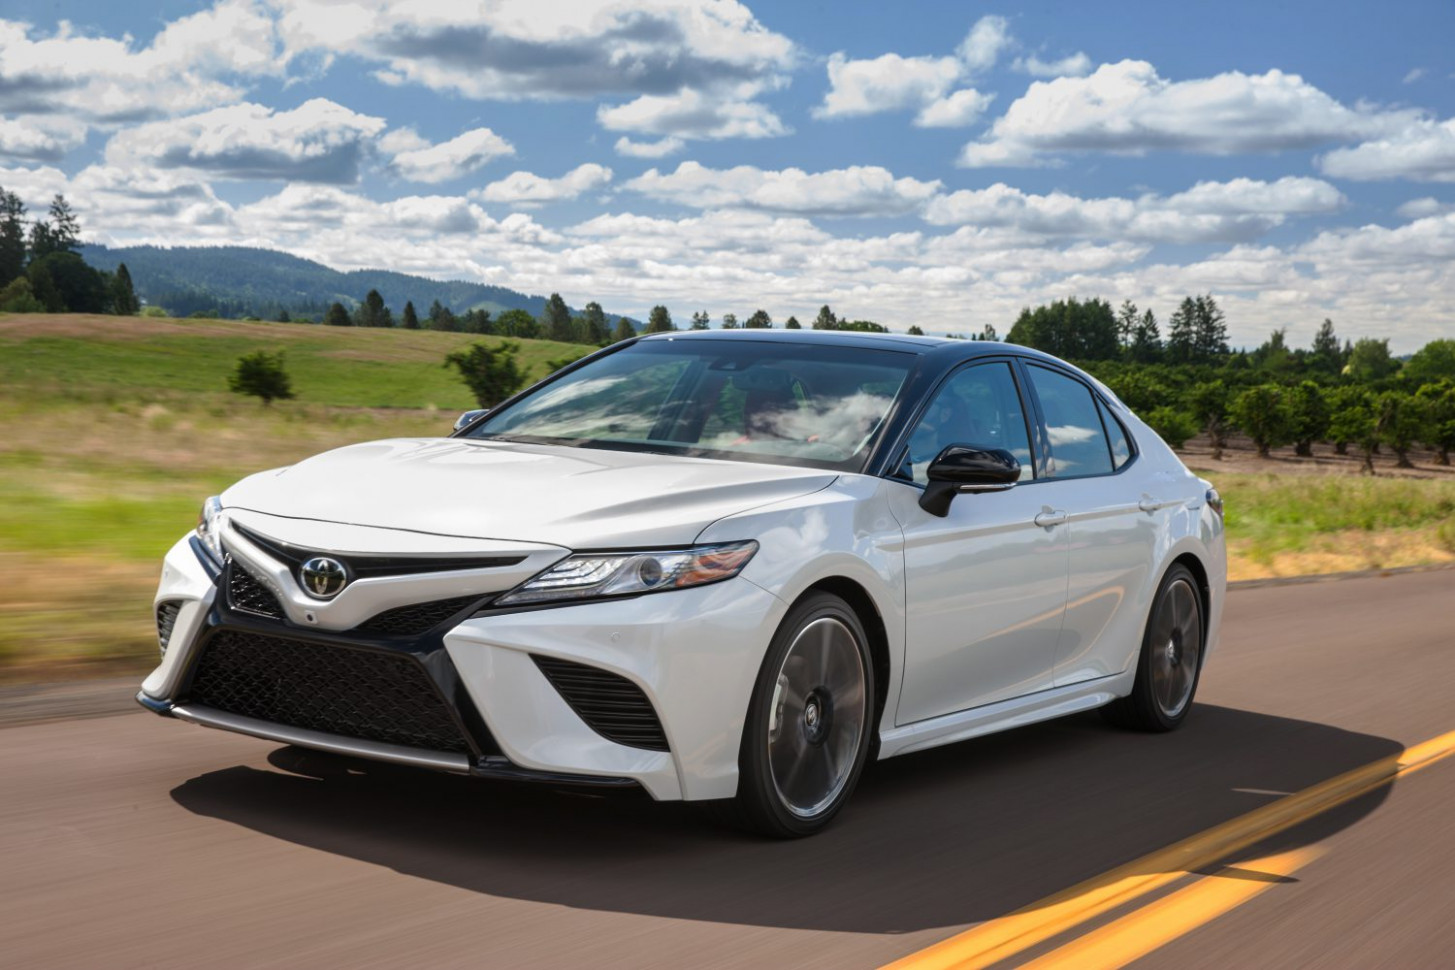 2020 Toyota Camry Concept and Review